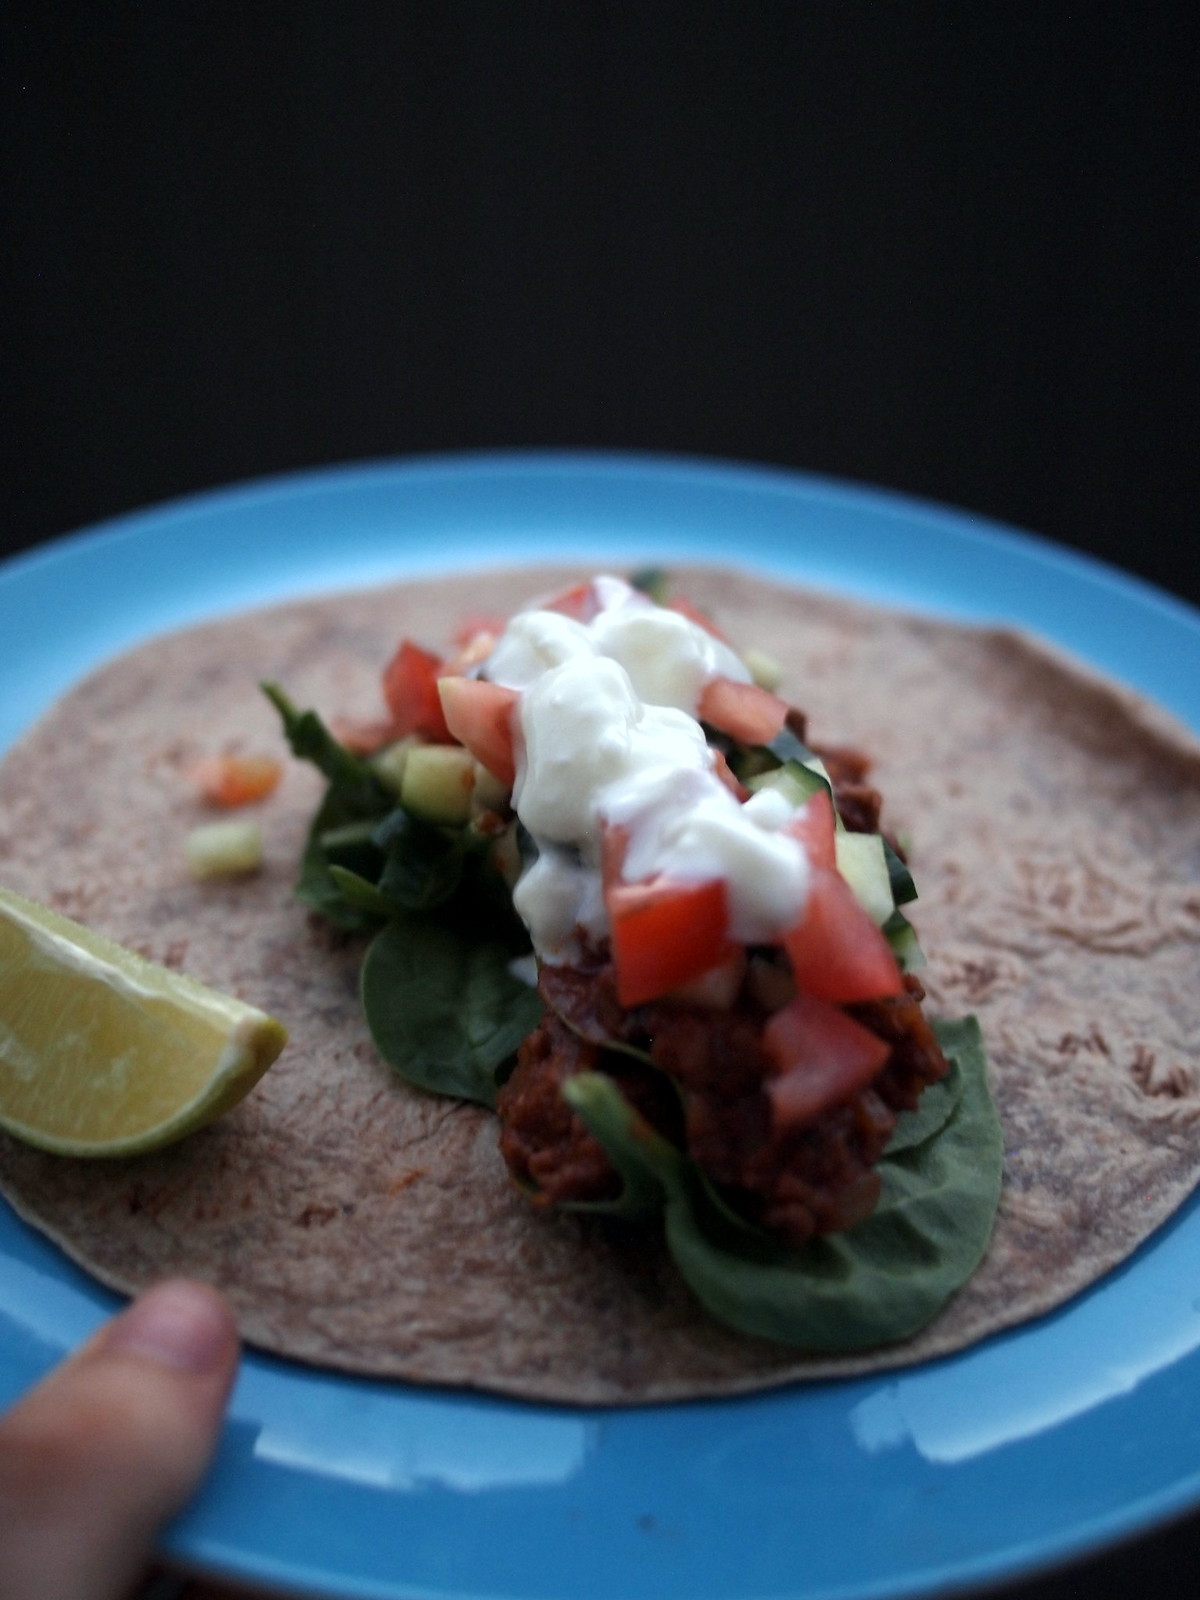 Beef chilli and beans burrito